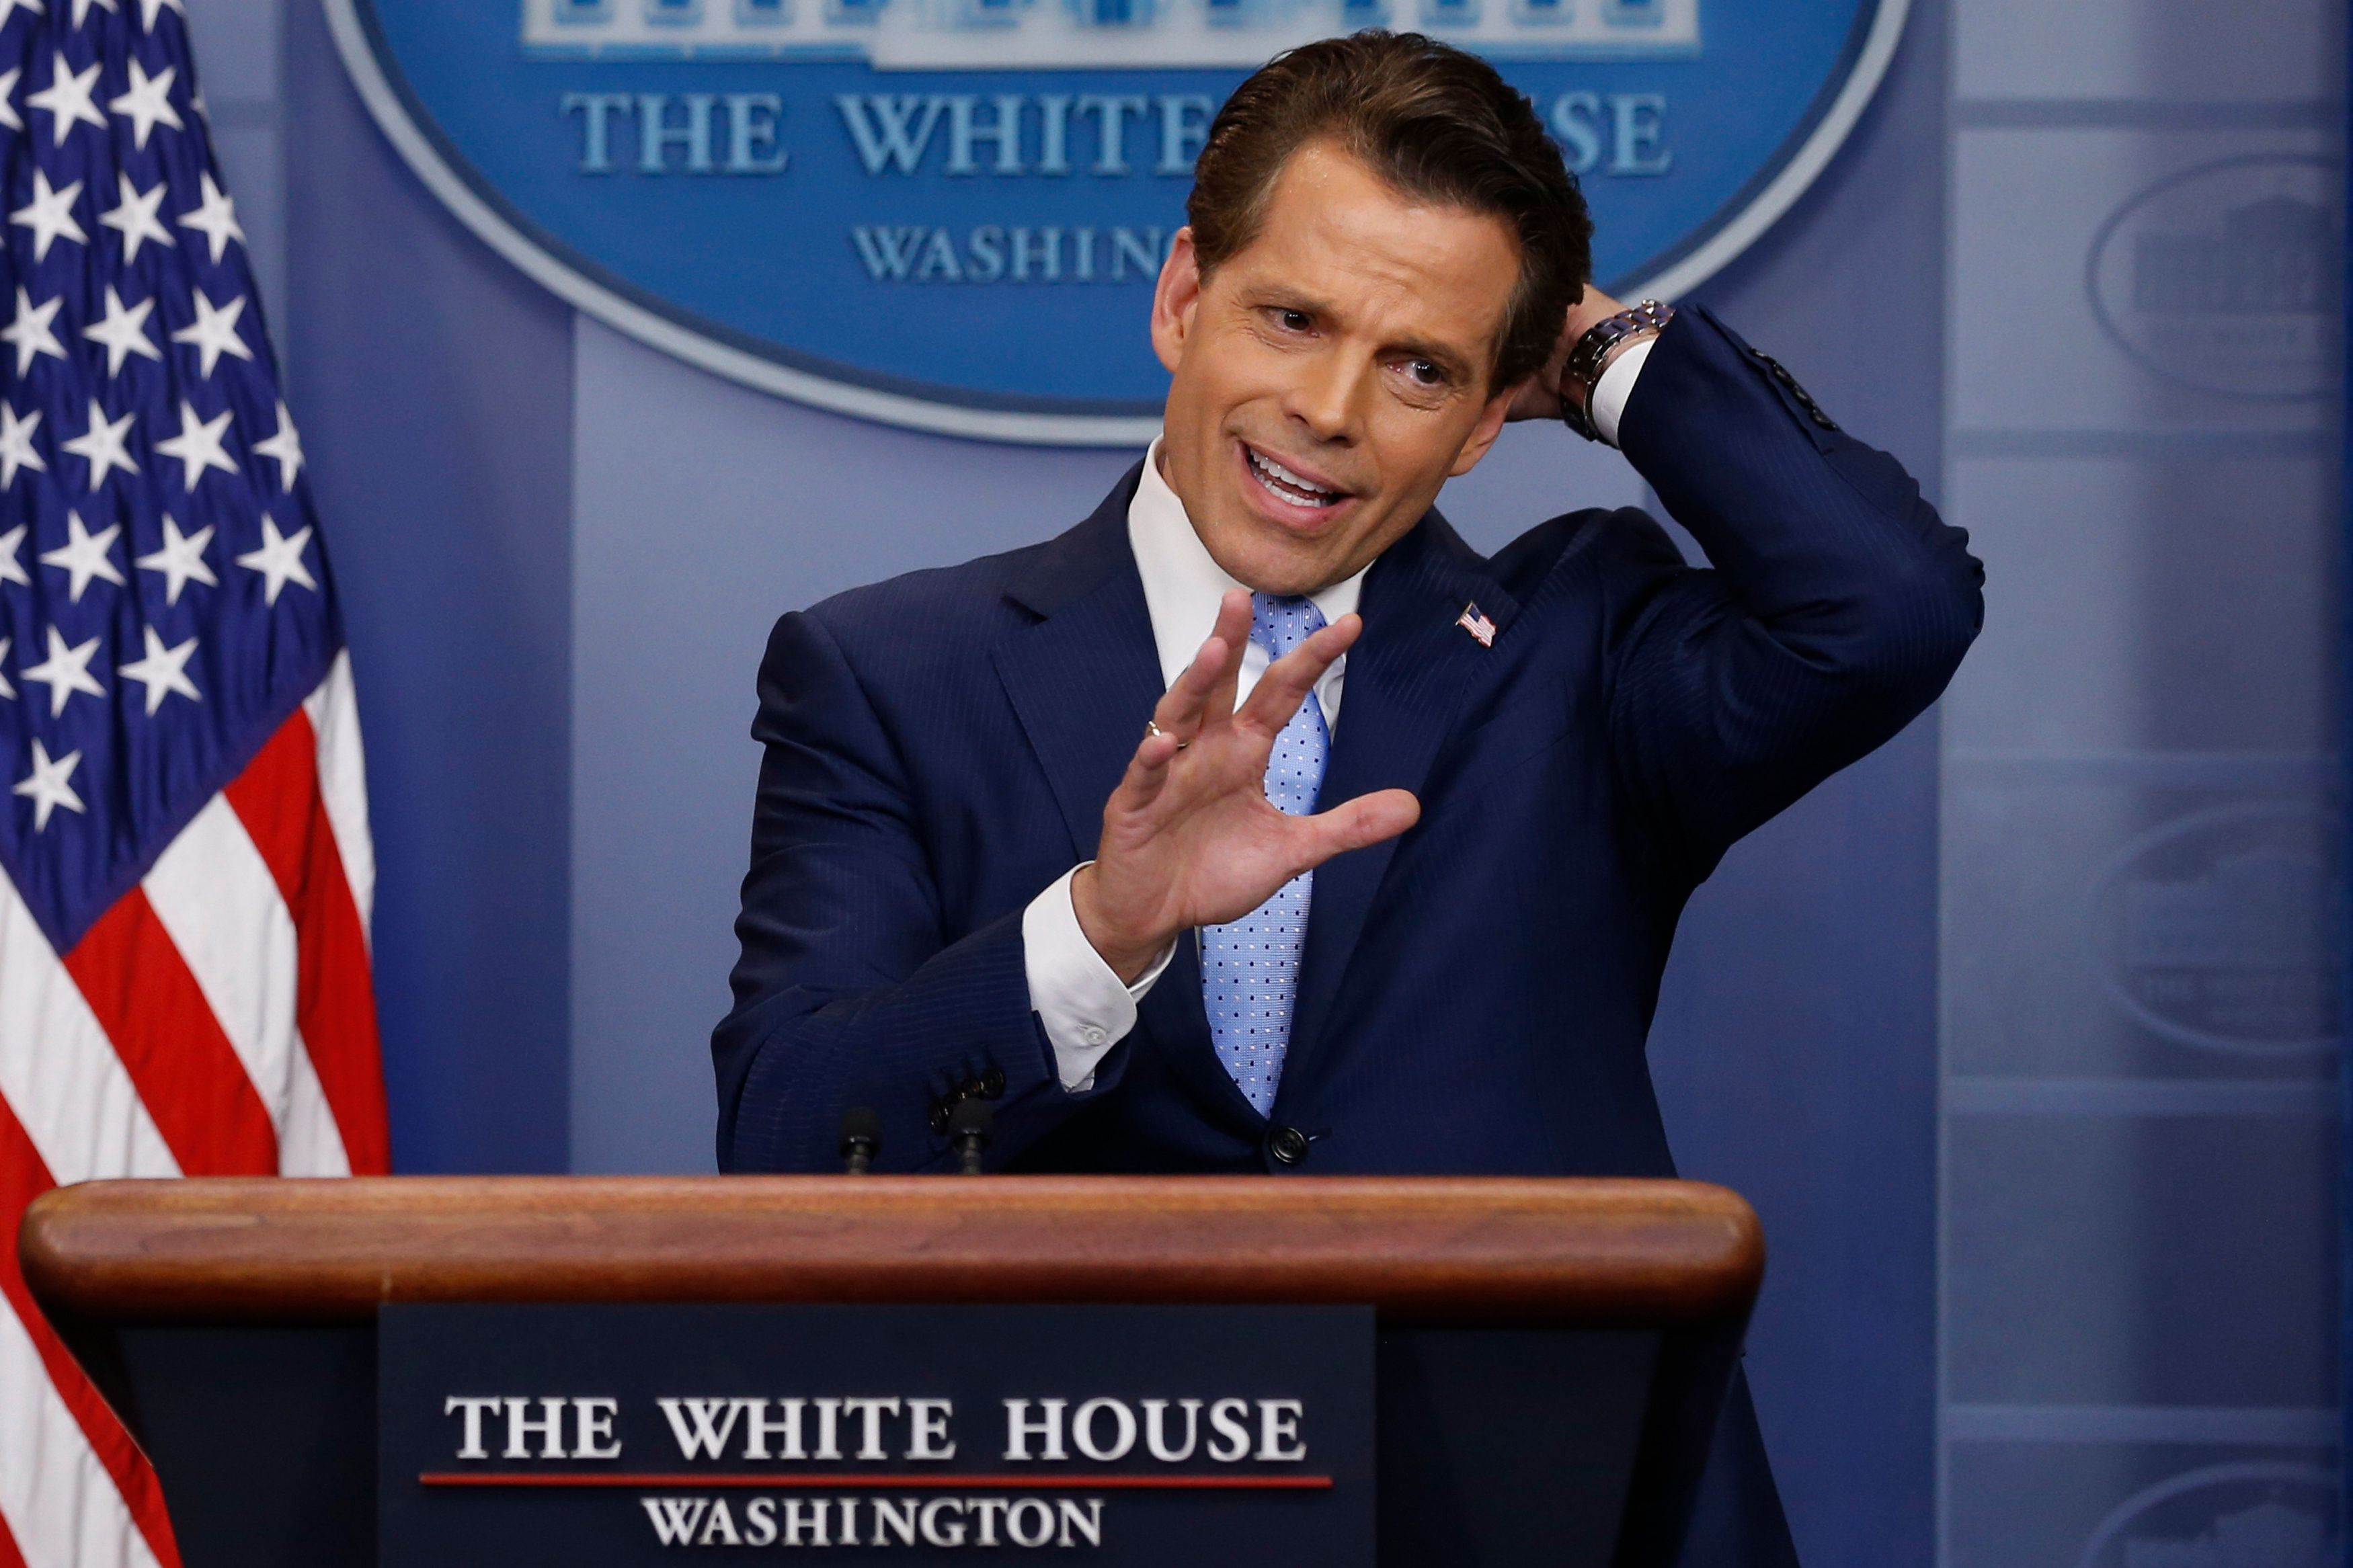 Anthony Scaramucci Sent Some Seriously Bizarre Emails To A